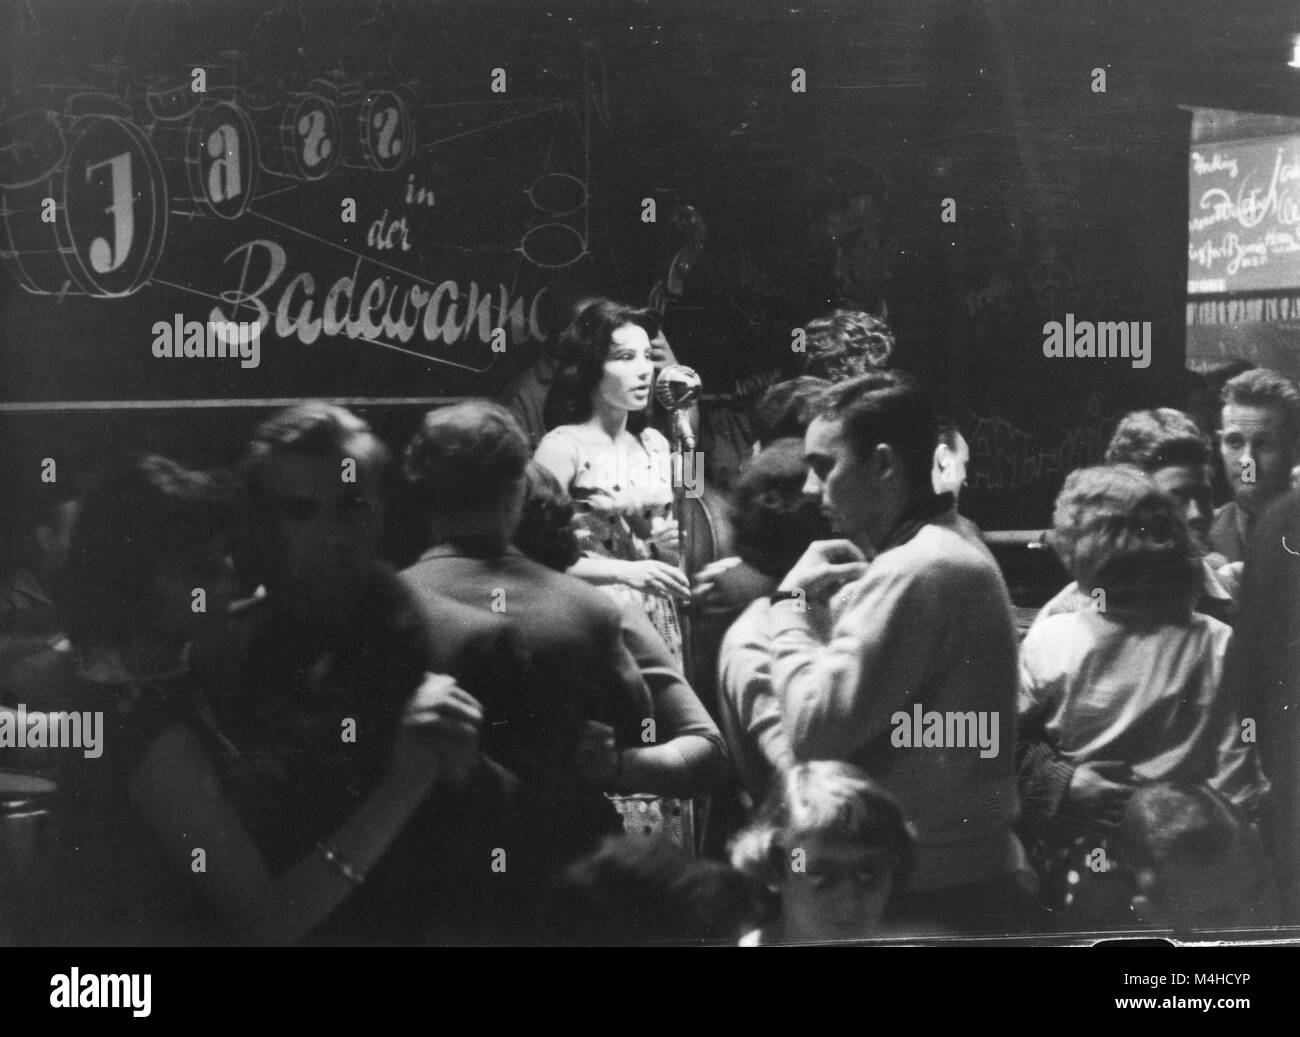 A Singing Woman And Dancing Couples In The Jazz Club Badewanne A